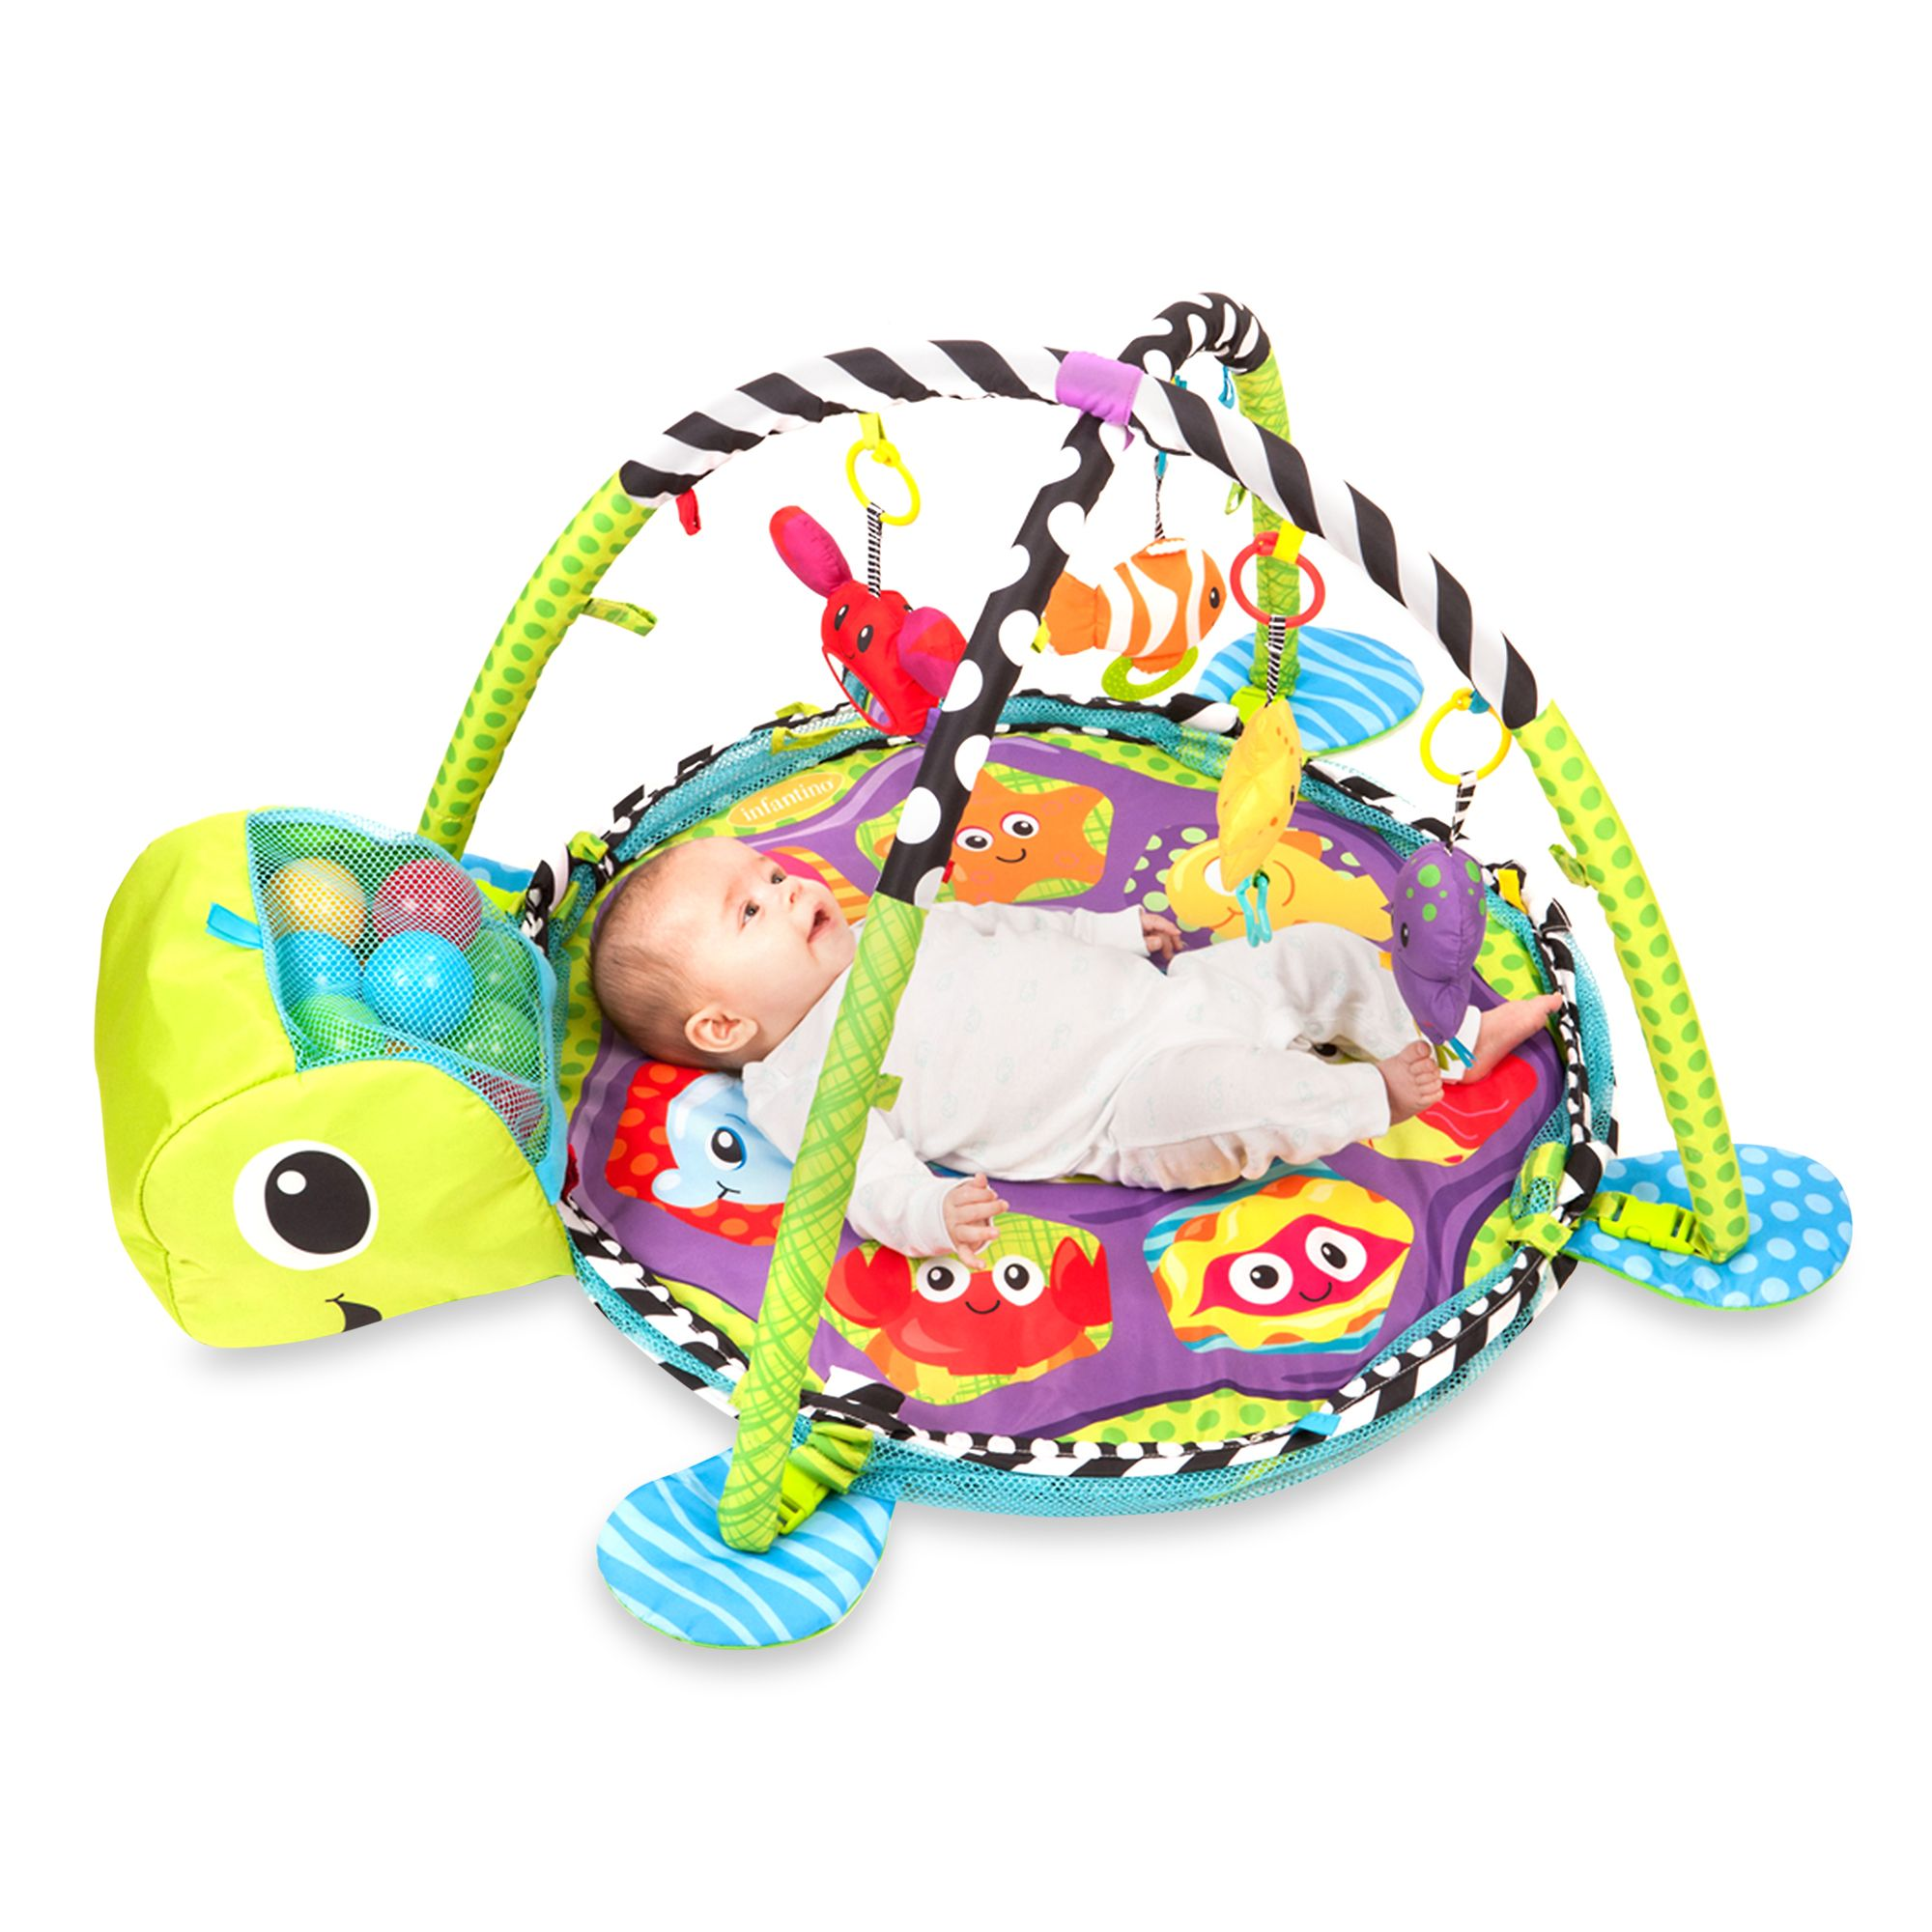 Infantino® Grow-With-Me Activity Gym & Ball Pit?